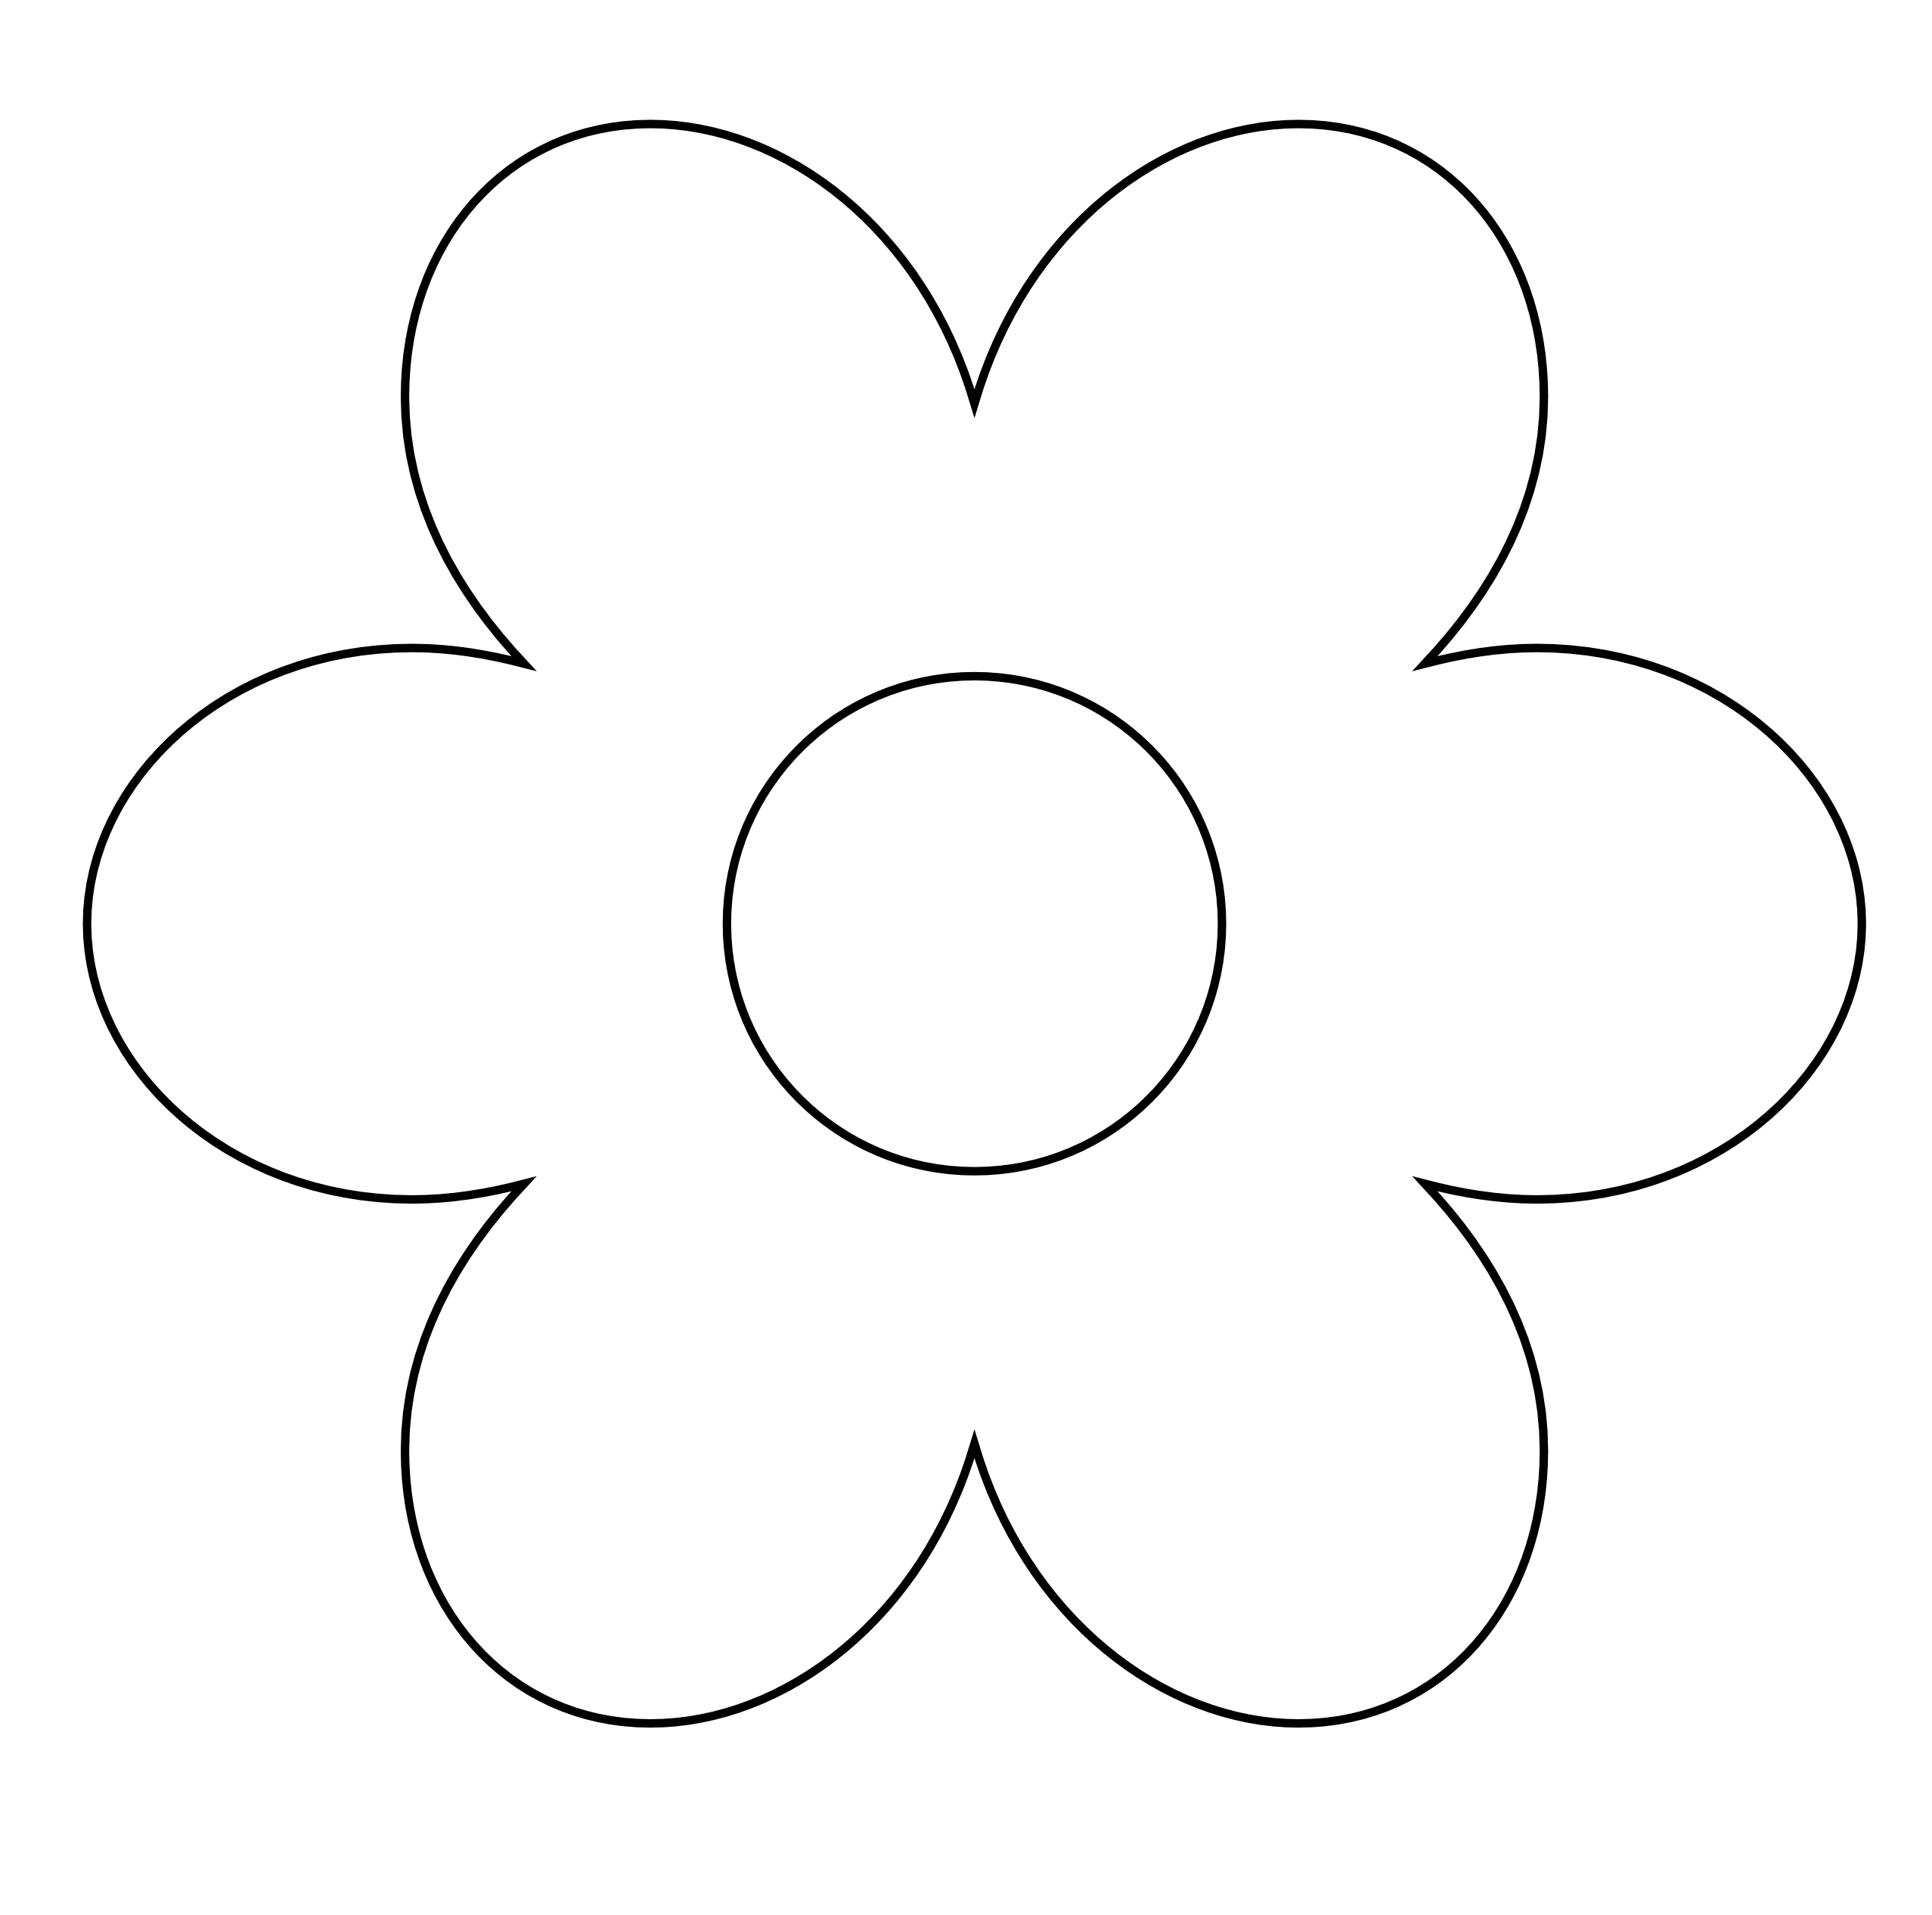 Jasmine flower clipart svg transparent download White flower clipart png - ClipartFest svg transparent download